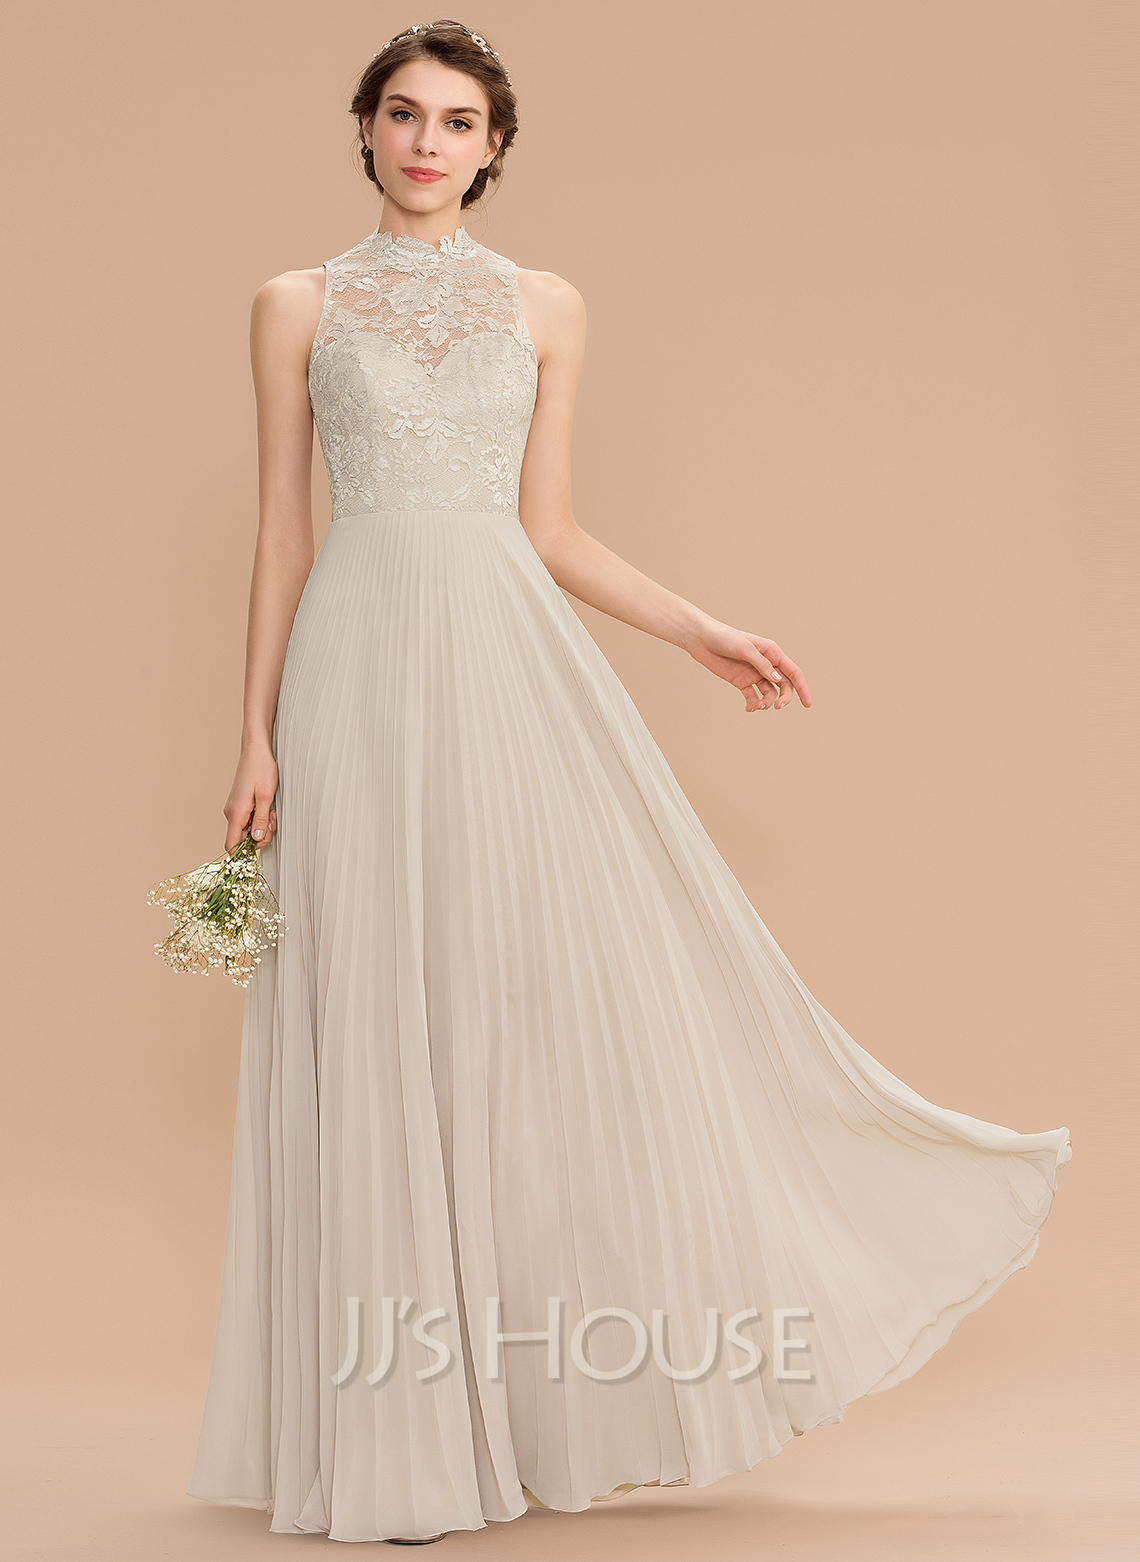 Scoop Neck Floor-Length Chiffon Lace Bridesmaid Dress With Pleated